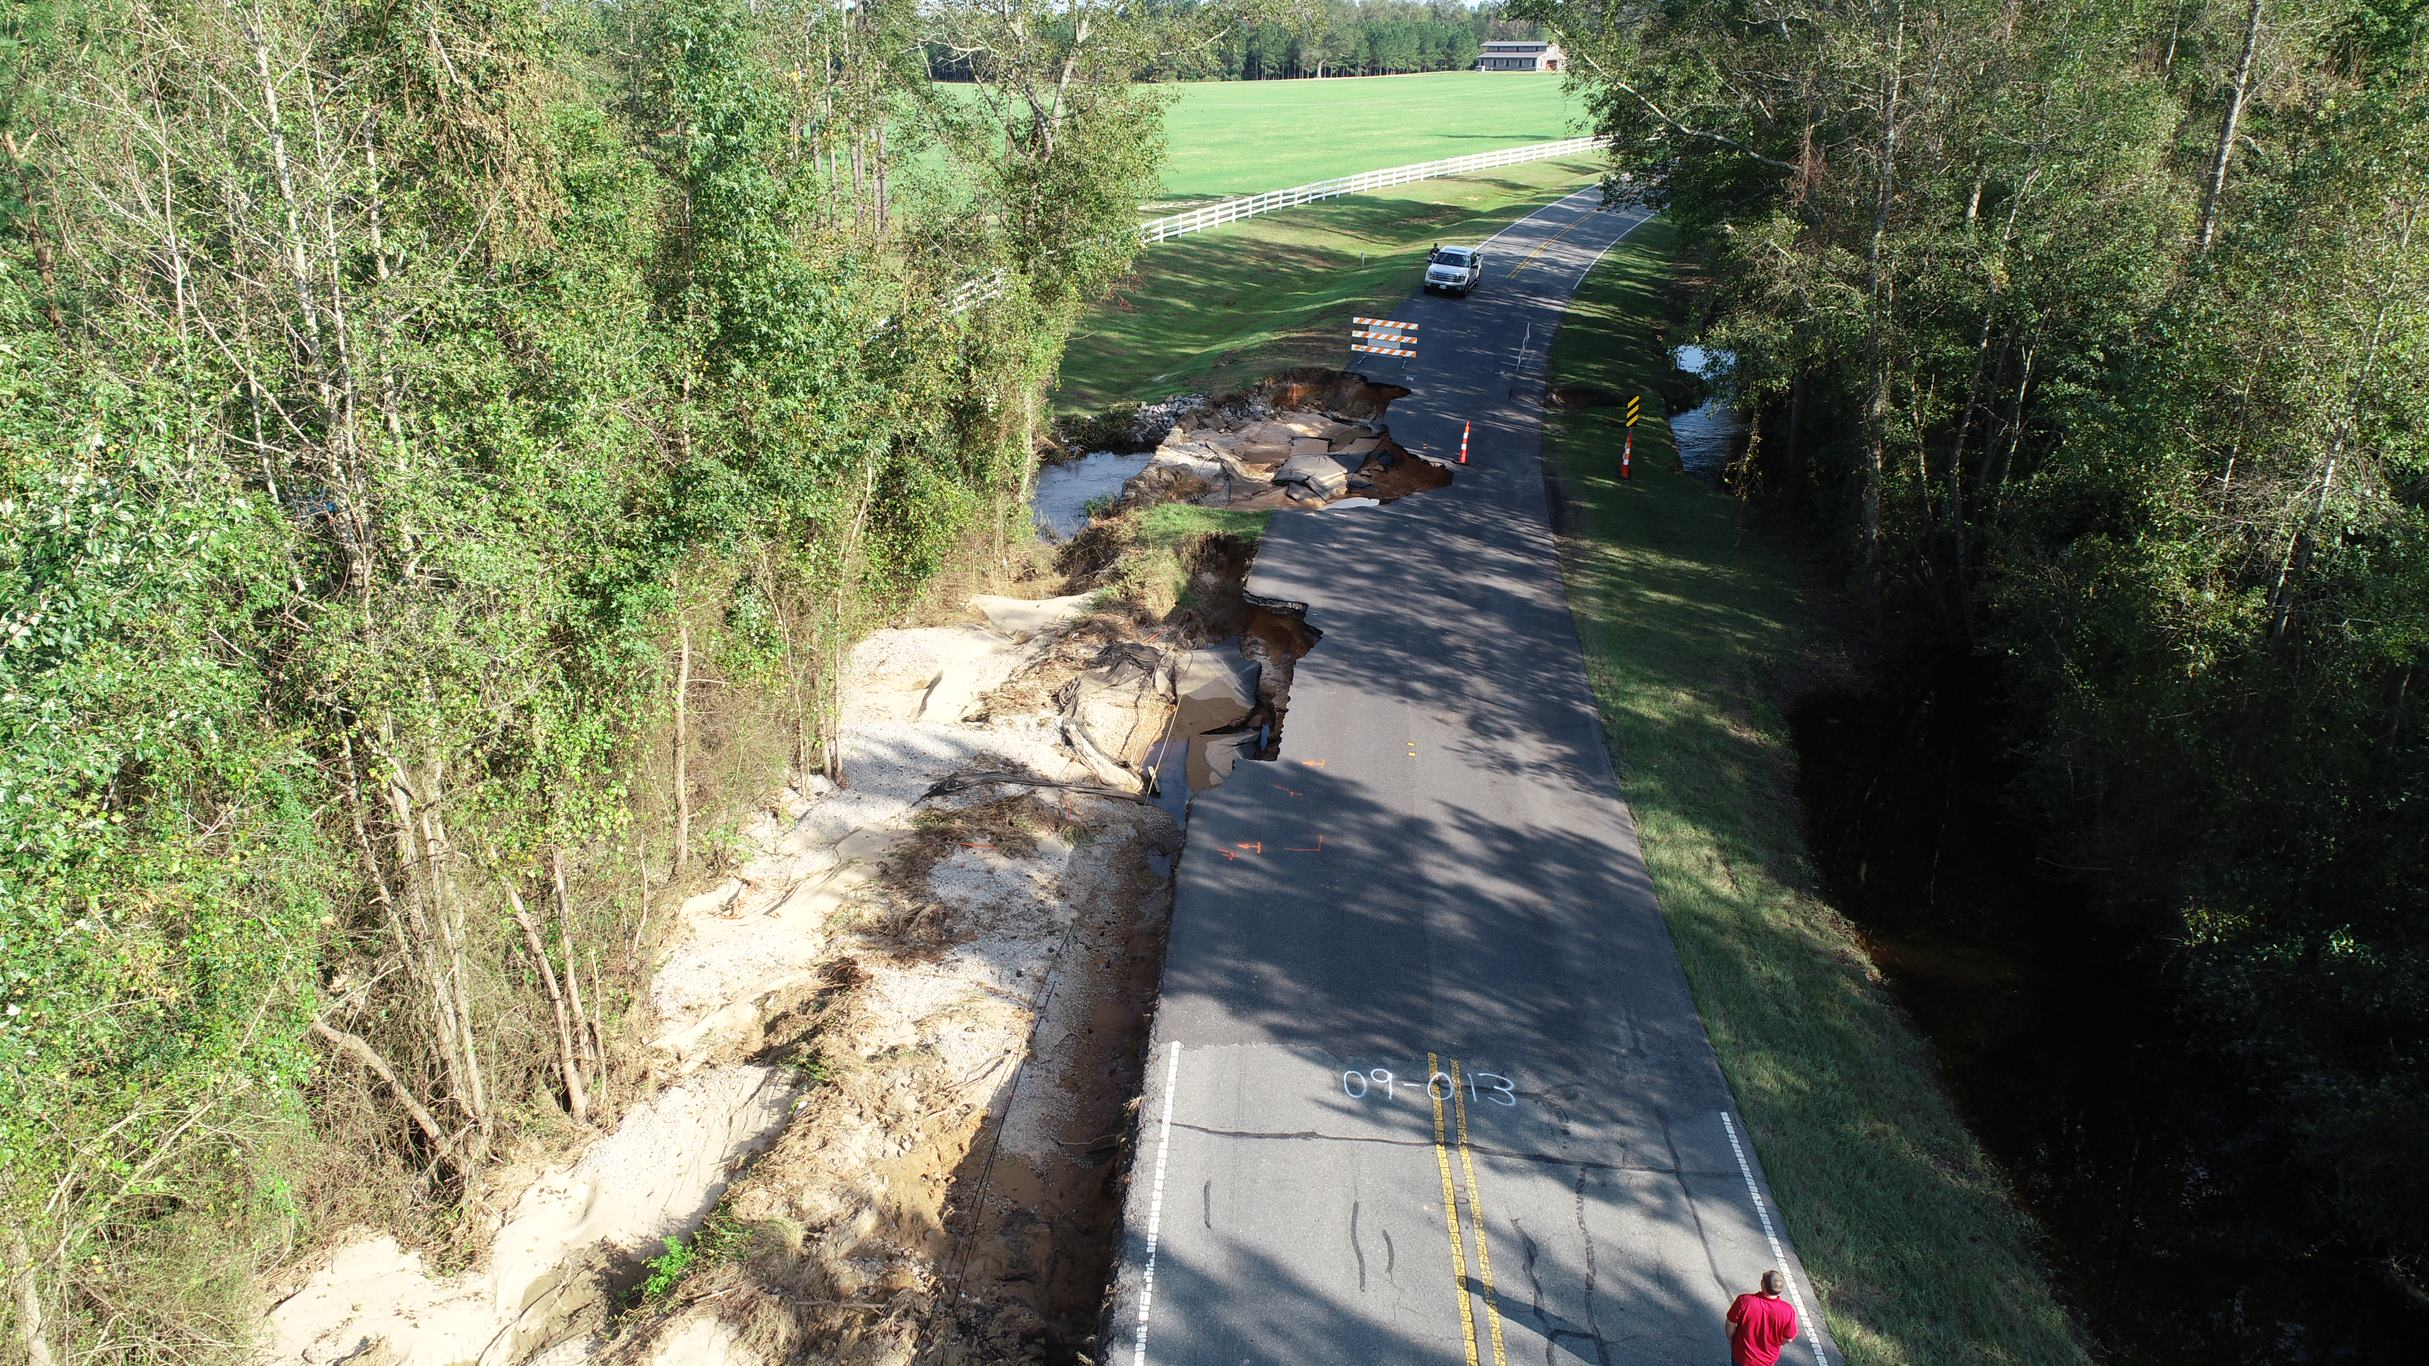 NC 210 North in Bladen County Hurricane Florence 1